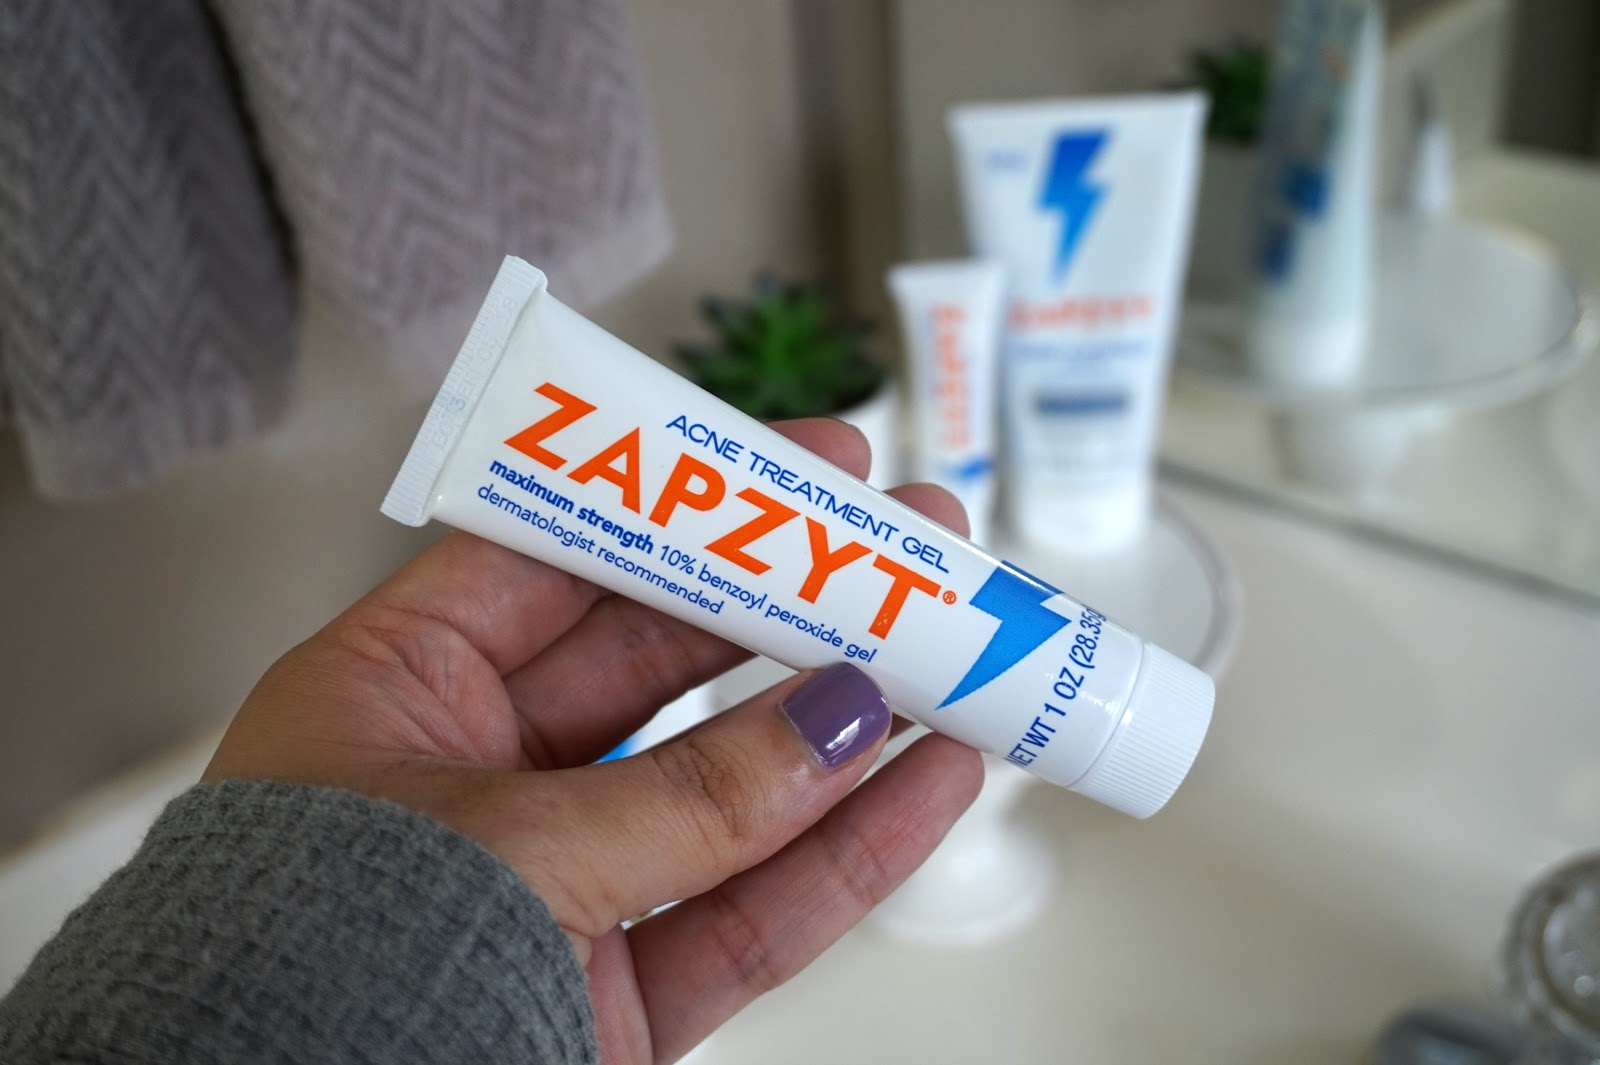 How To Treat Acne With ZapZyt + Tips For Acne Prone Skin | Battle those pesky breakouts with a line made just for acne prone skin. // Beauty With Lily, A West Texas Beauty, Fashion & Lifestyle Blog